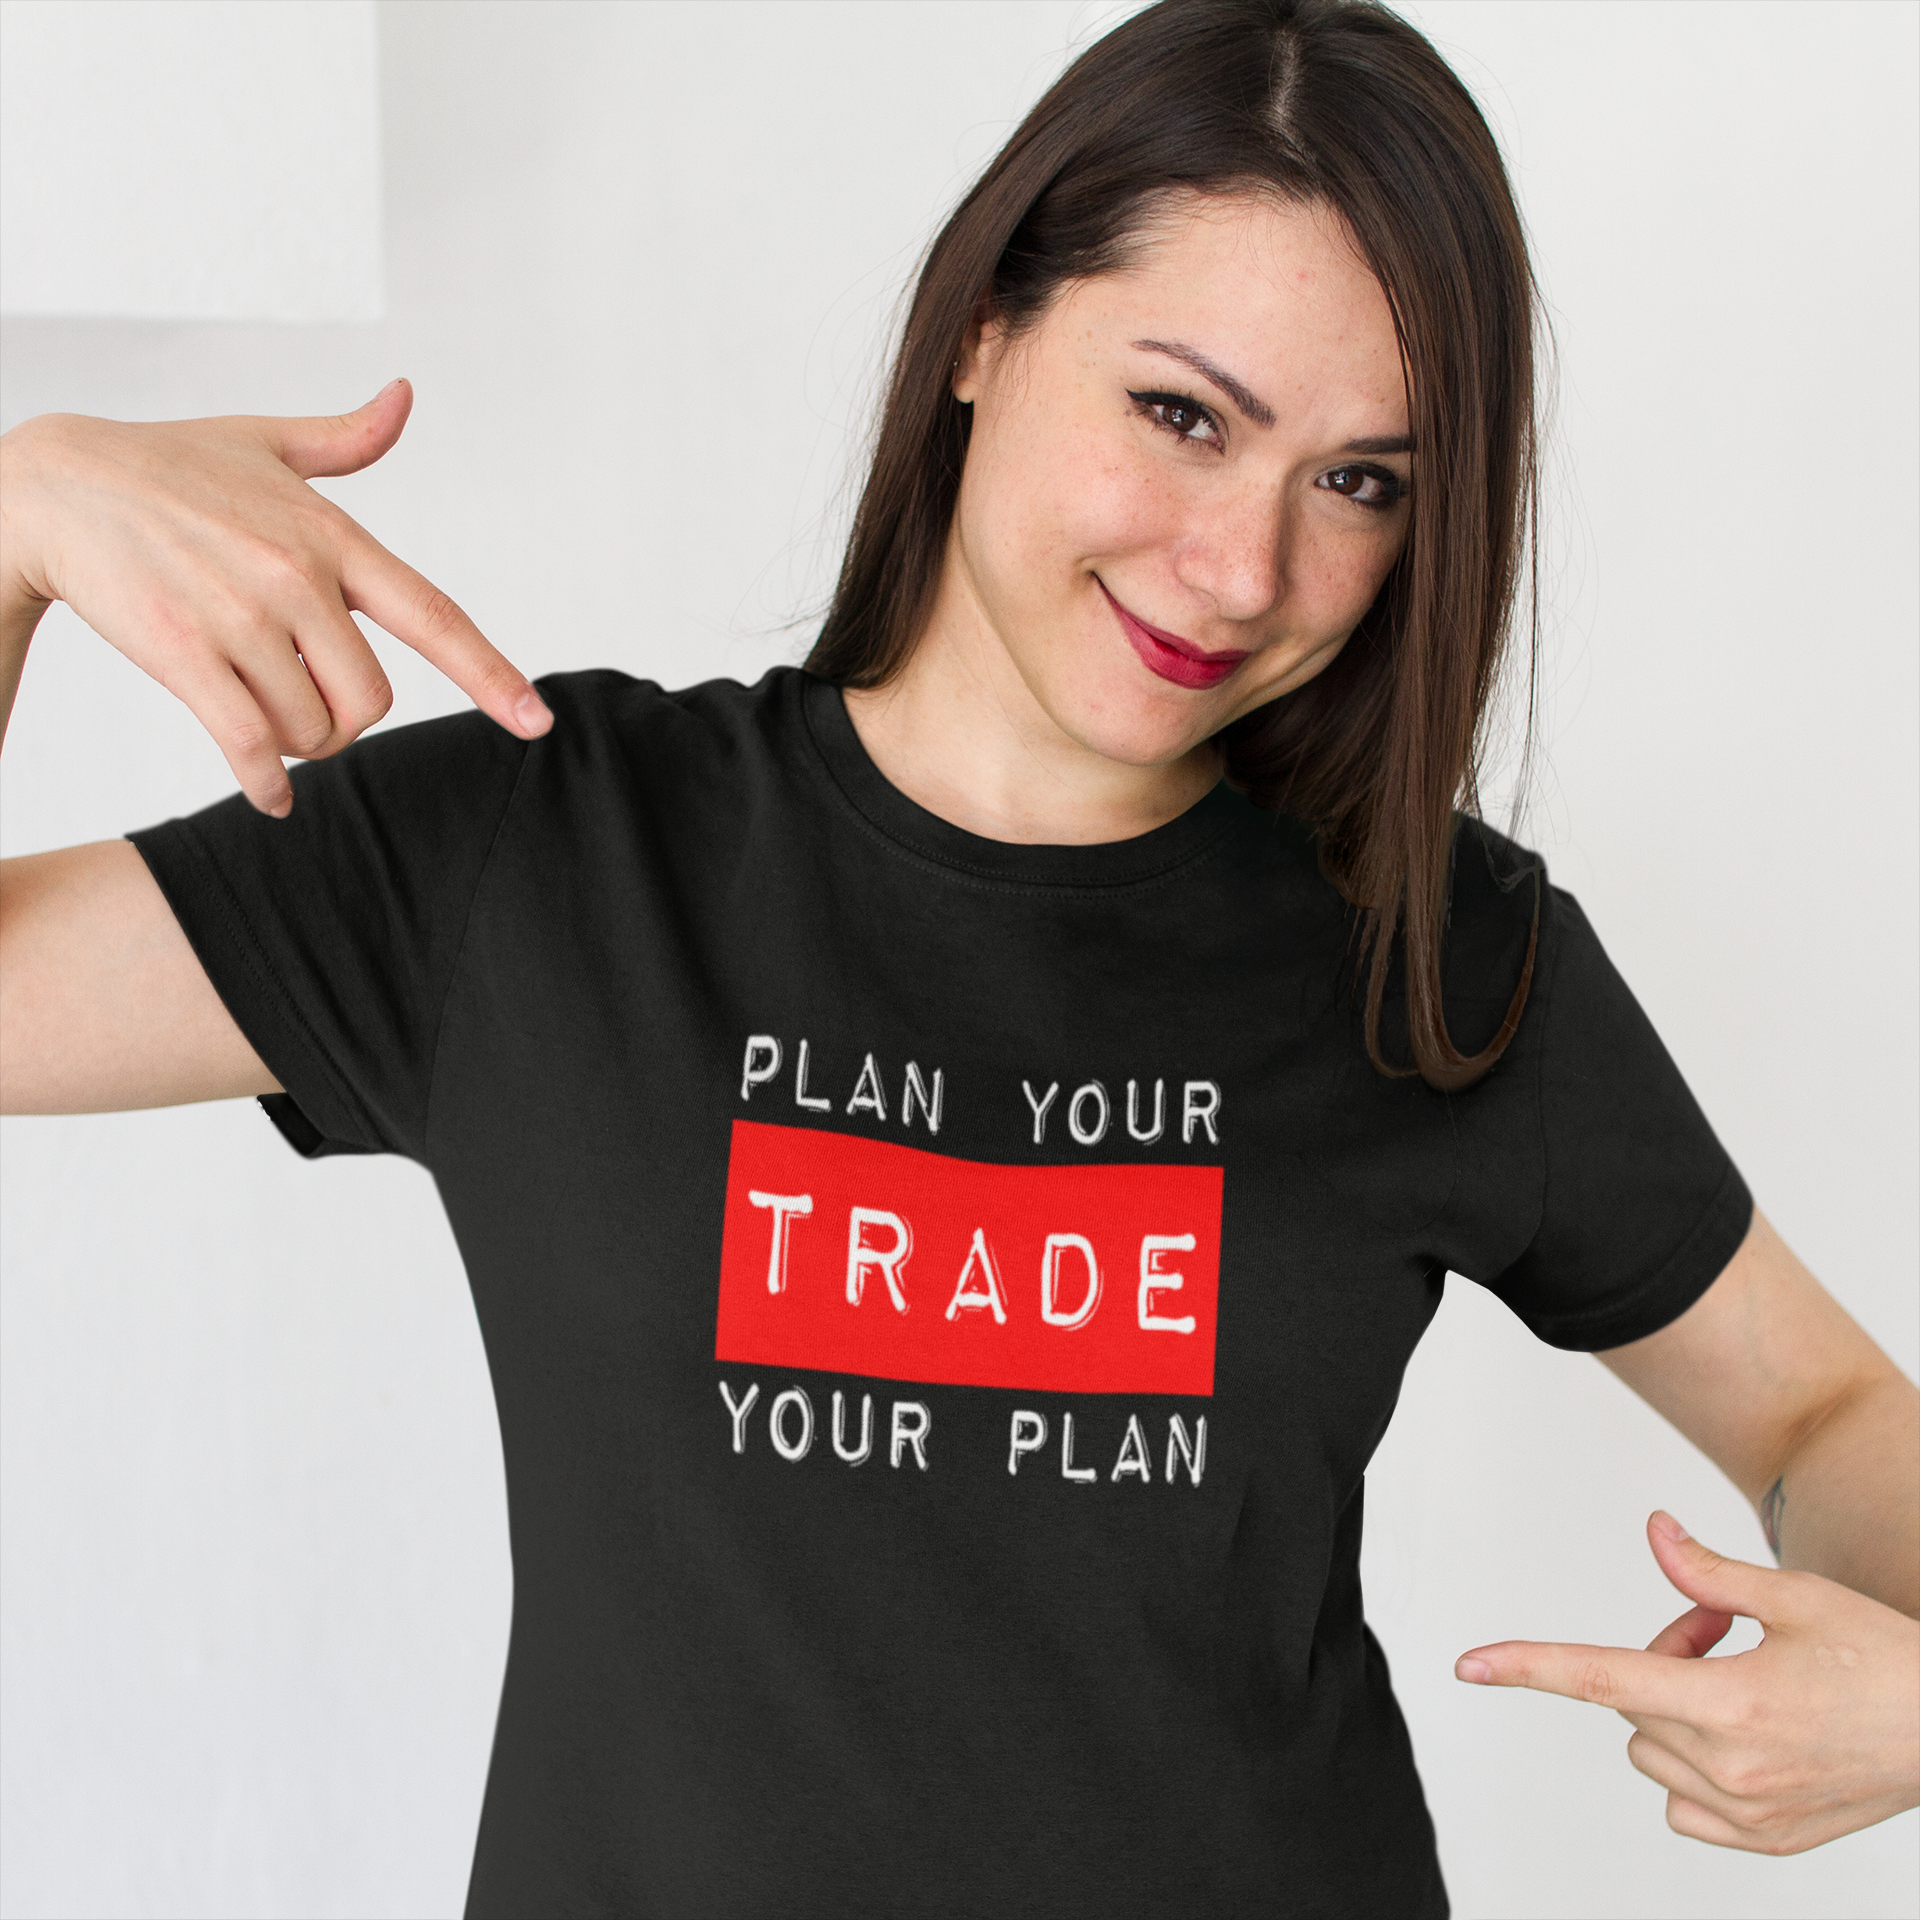 smiling-customer-showing-her-new-t-shirt-mockup-against-a-white-background-a15529.png